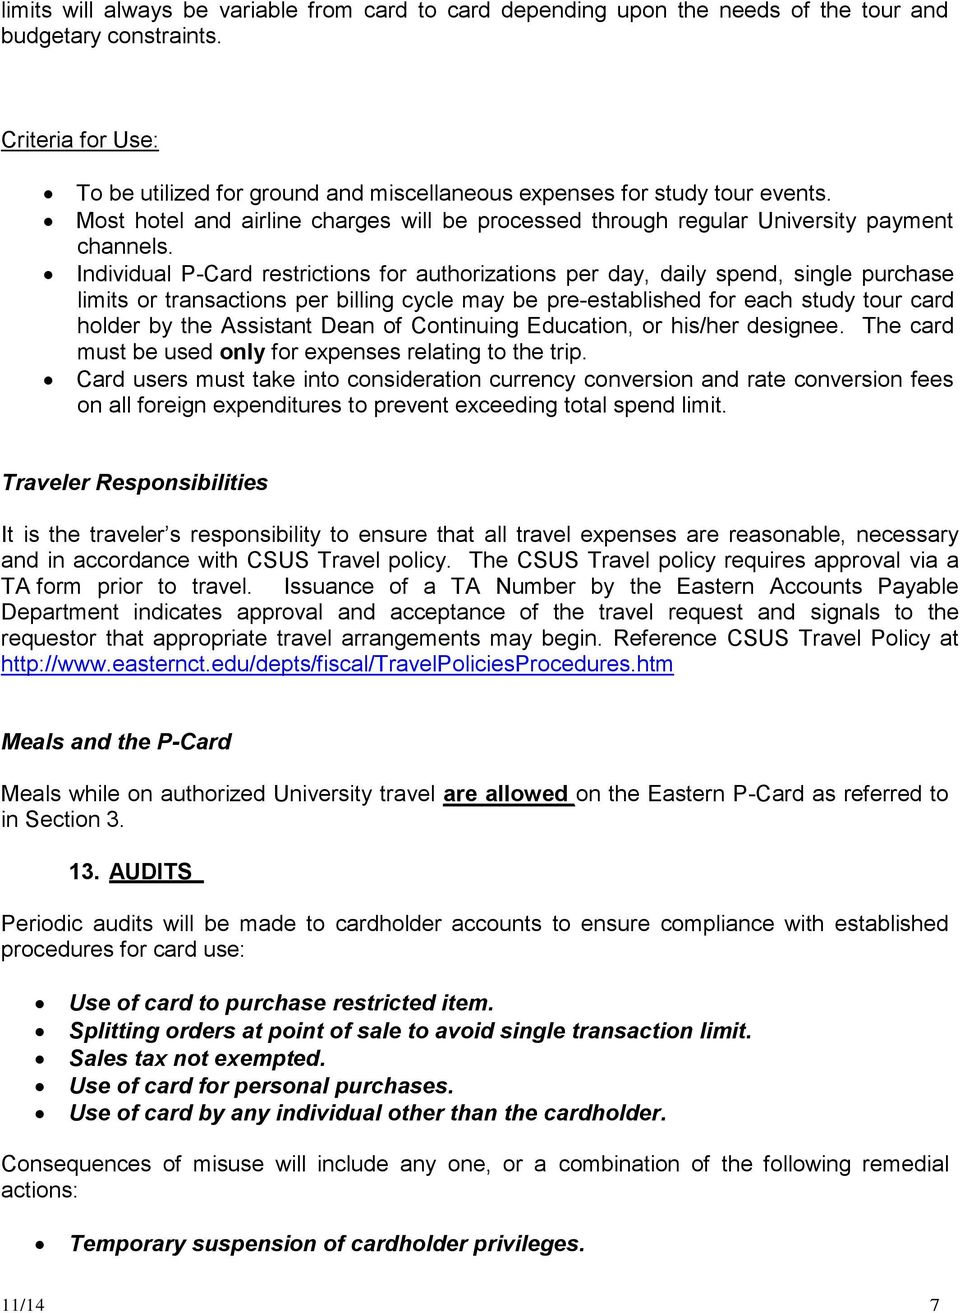 Individual P-Card restrictions for authorizations per day, daily spend, single purchase limits or transactions per billing cycle may be pre-established for each study tour card holder by the